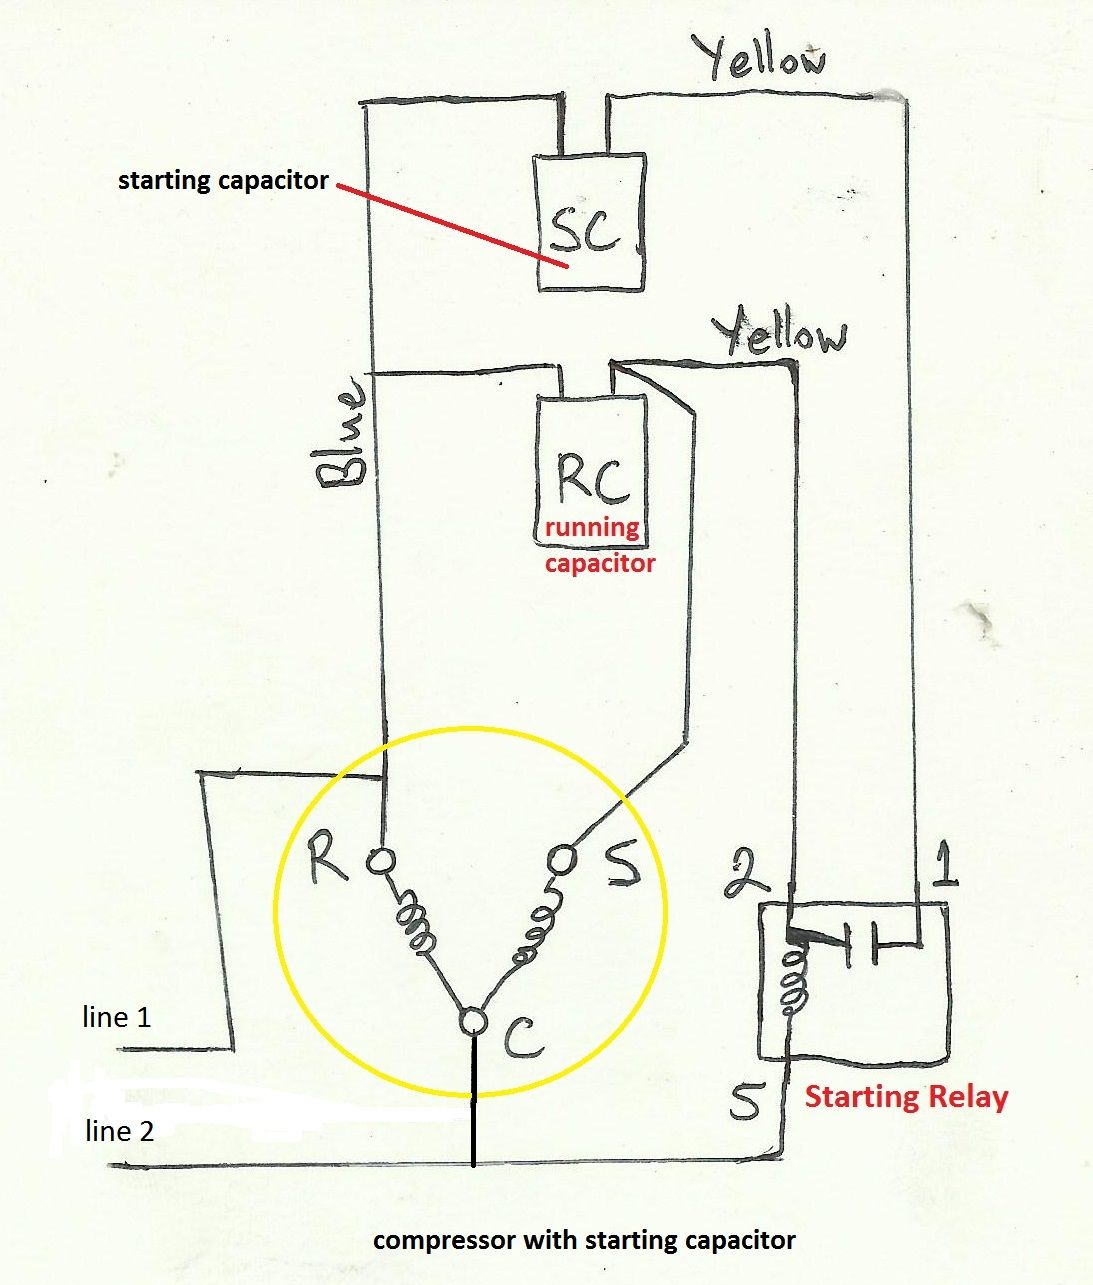 Wall Ac Capacitor Wiring Diagram Not Lossing Samsung Dv520aep Xaa Dryer Air Compressor Before You Call A Repair Rh Pinterest Com Conditioner Color